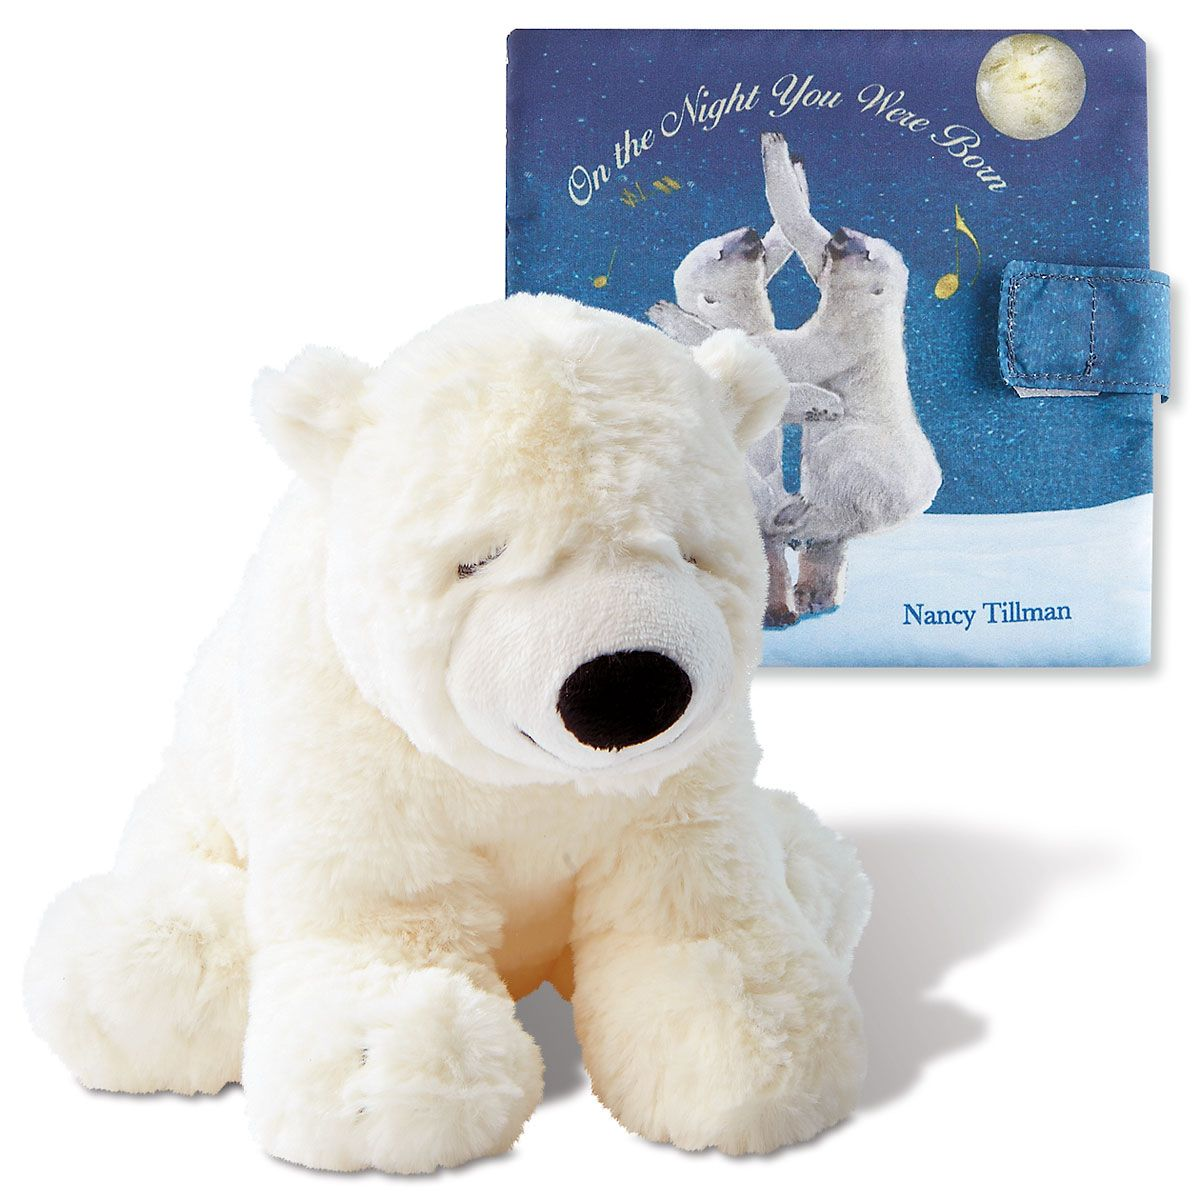 On The Night You Were Born Personalized Book Plush Polar Bear